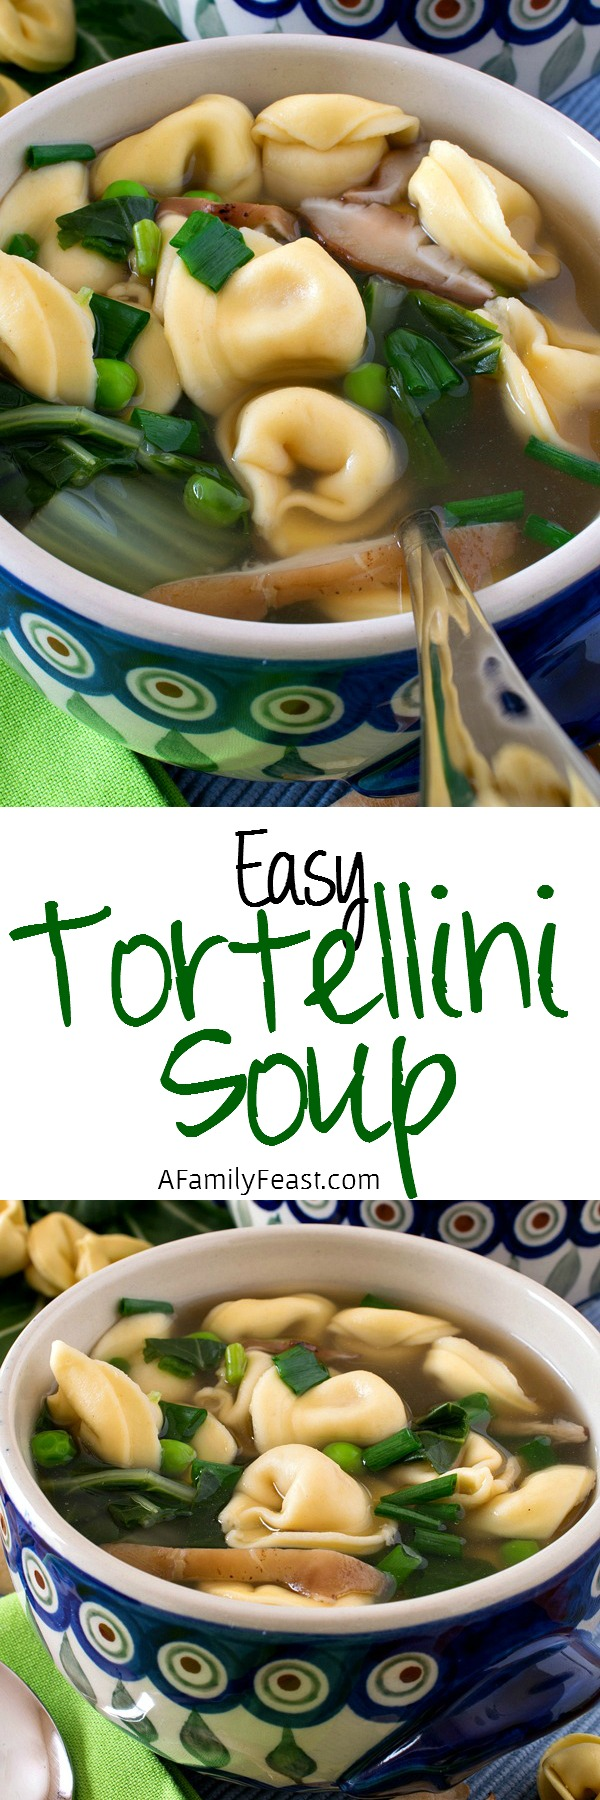 This Easy Tortellini Soup is ready in just 8 minutes! Super flavorful and easy to make.